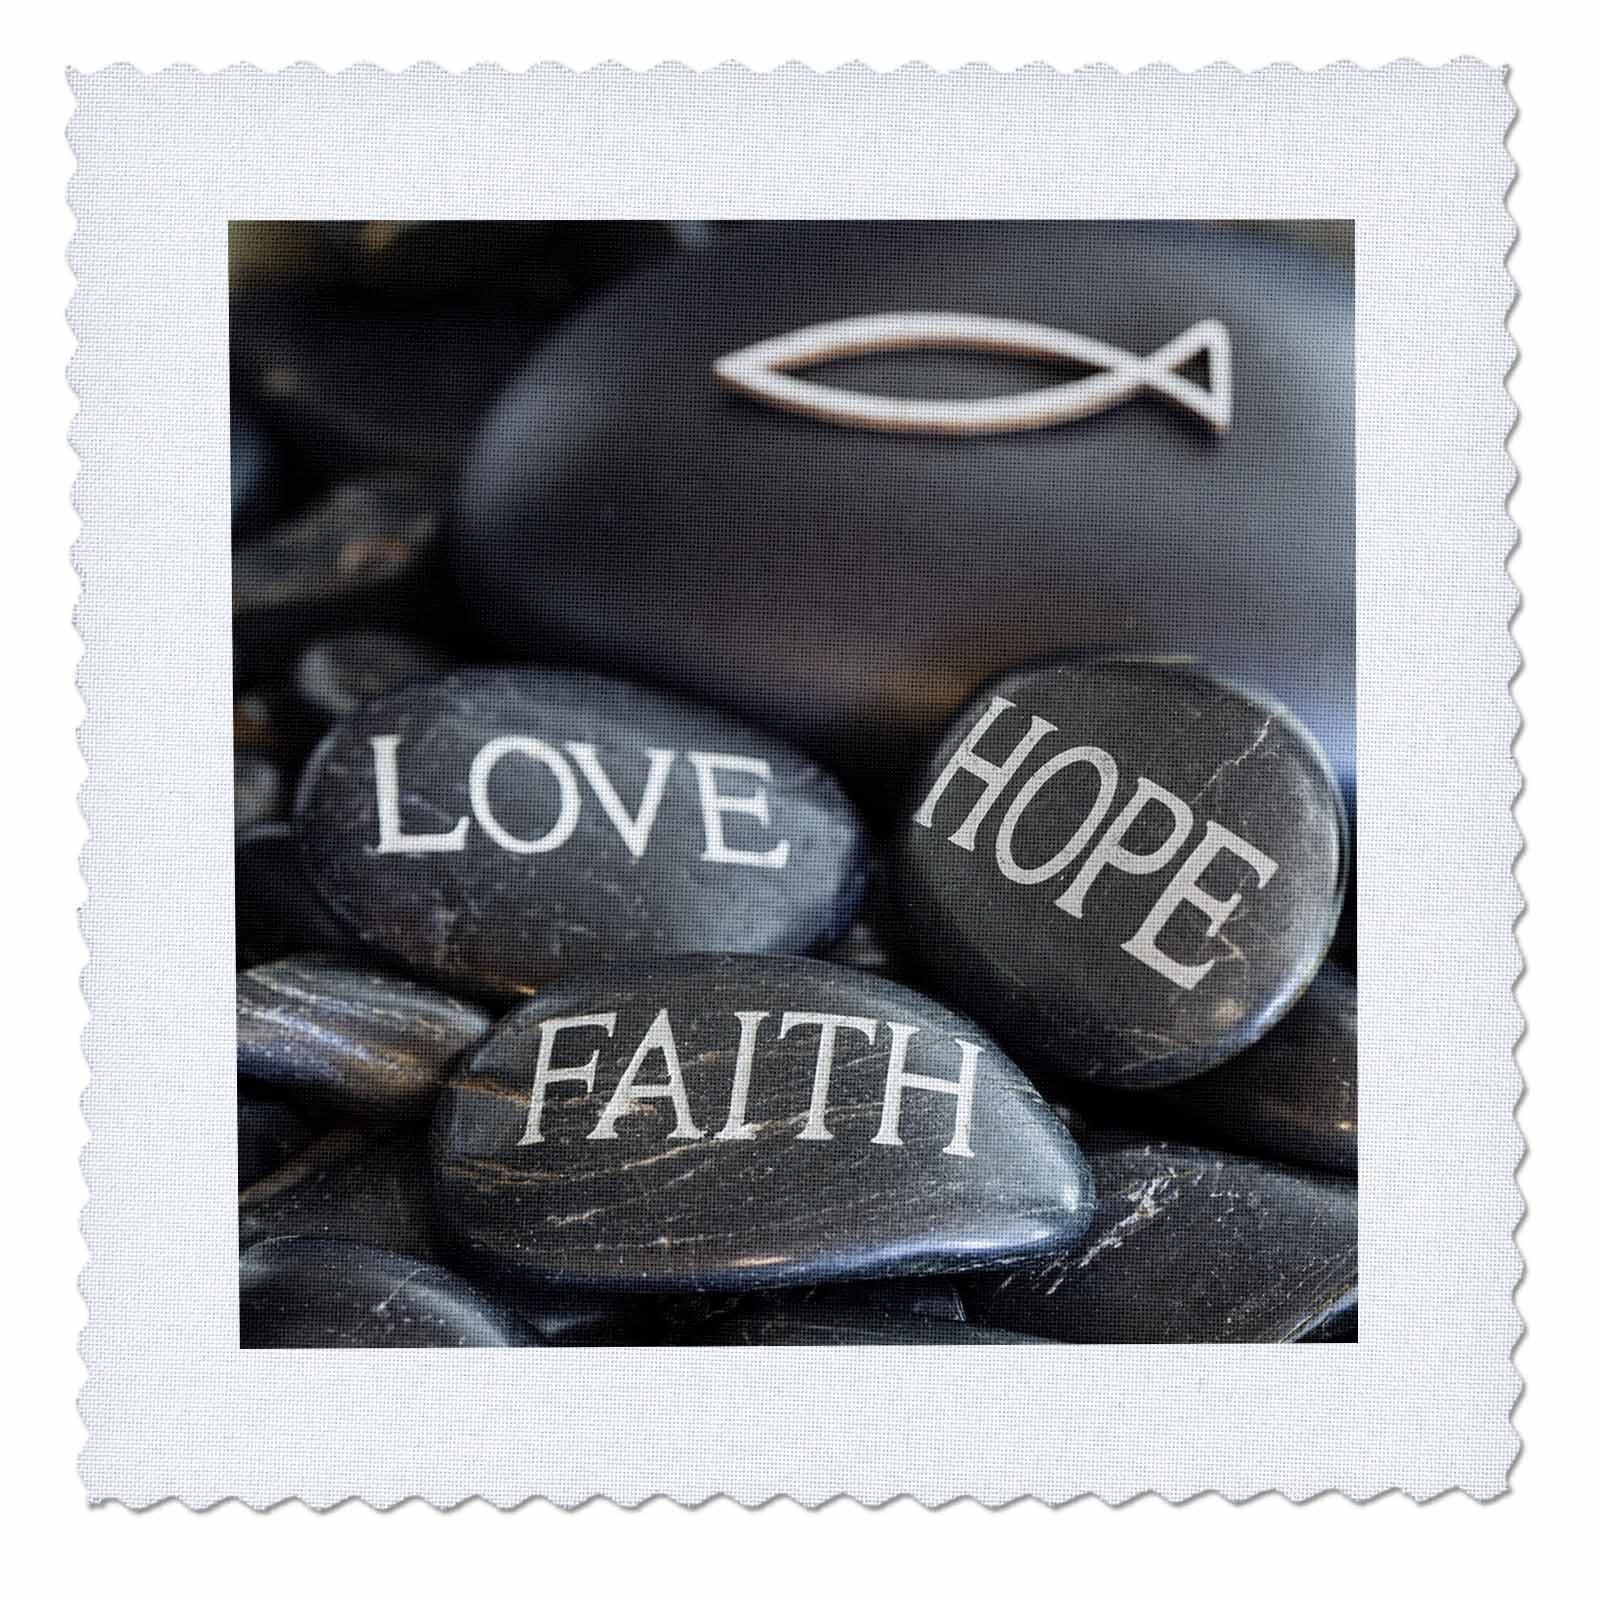 3dRose Andrea Haase Still Life Photography - Black Pebble Engraved, Love Faith Hope - 16x16 inch quilt square (qs_268541_6) by 3dRose